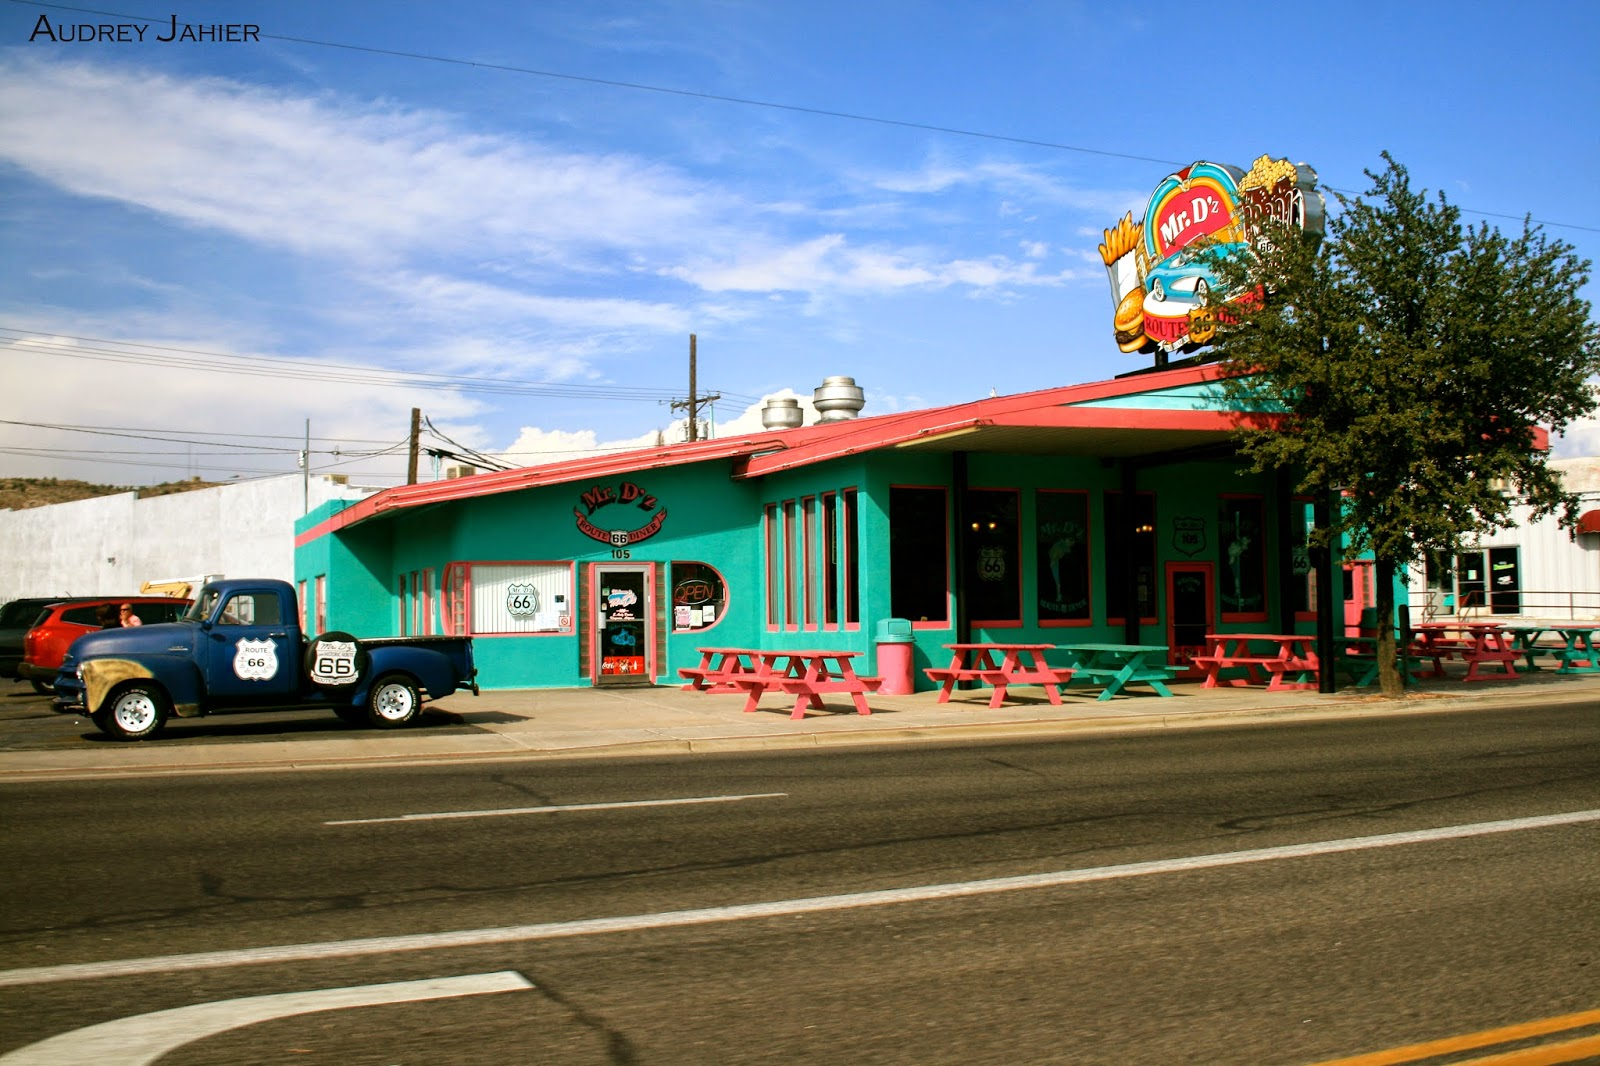 route66-route-66-Motel-roadtrip-usa